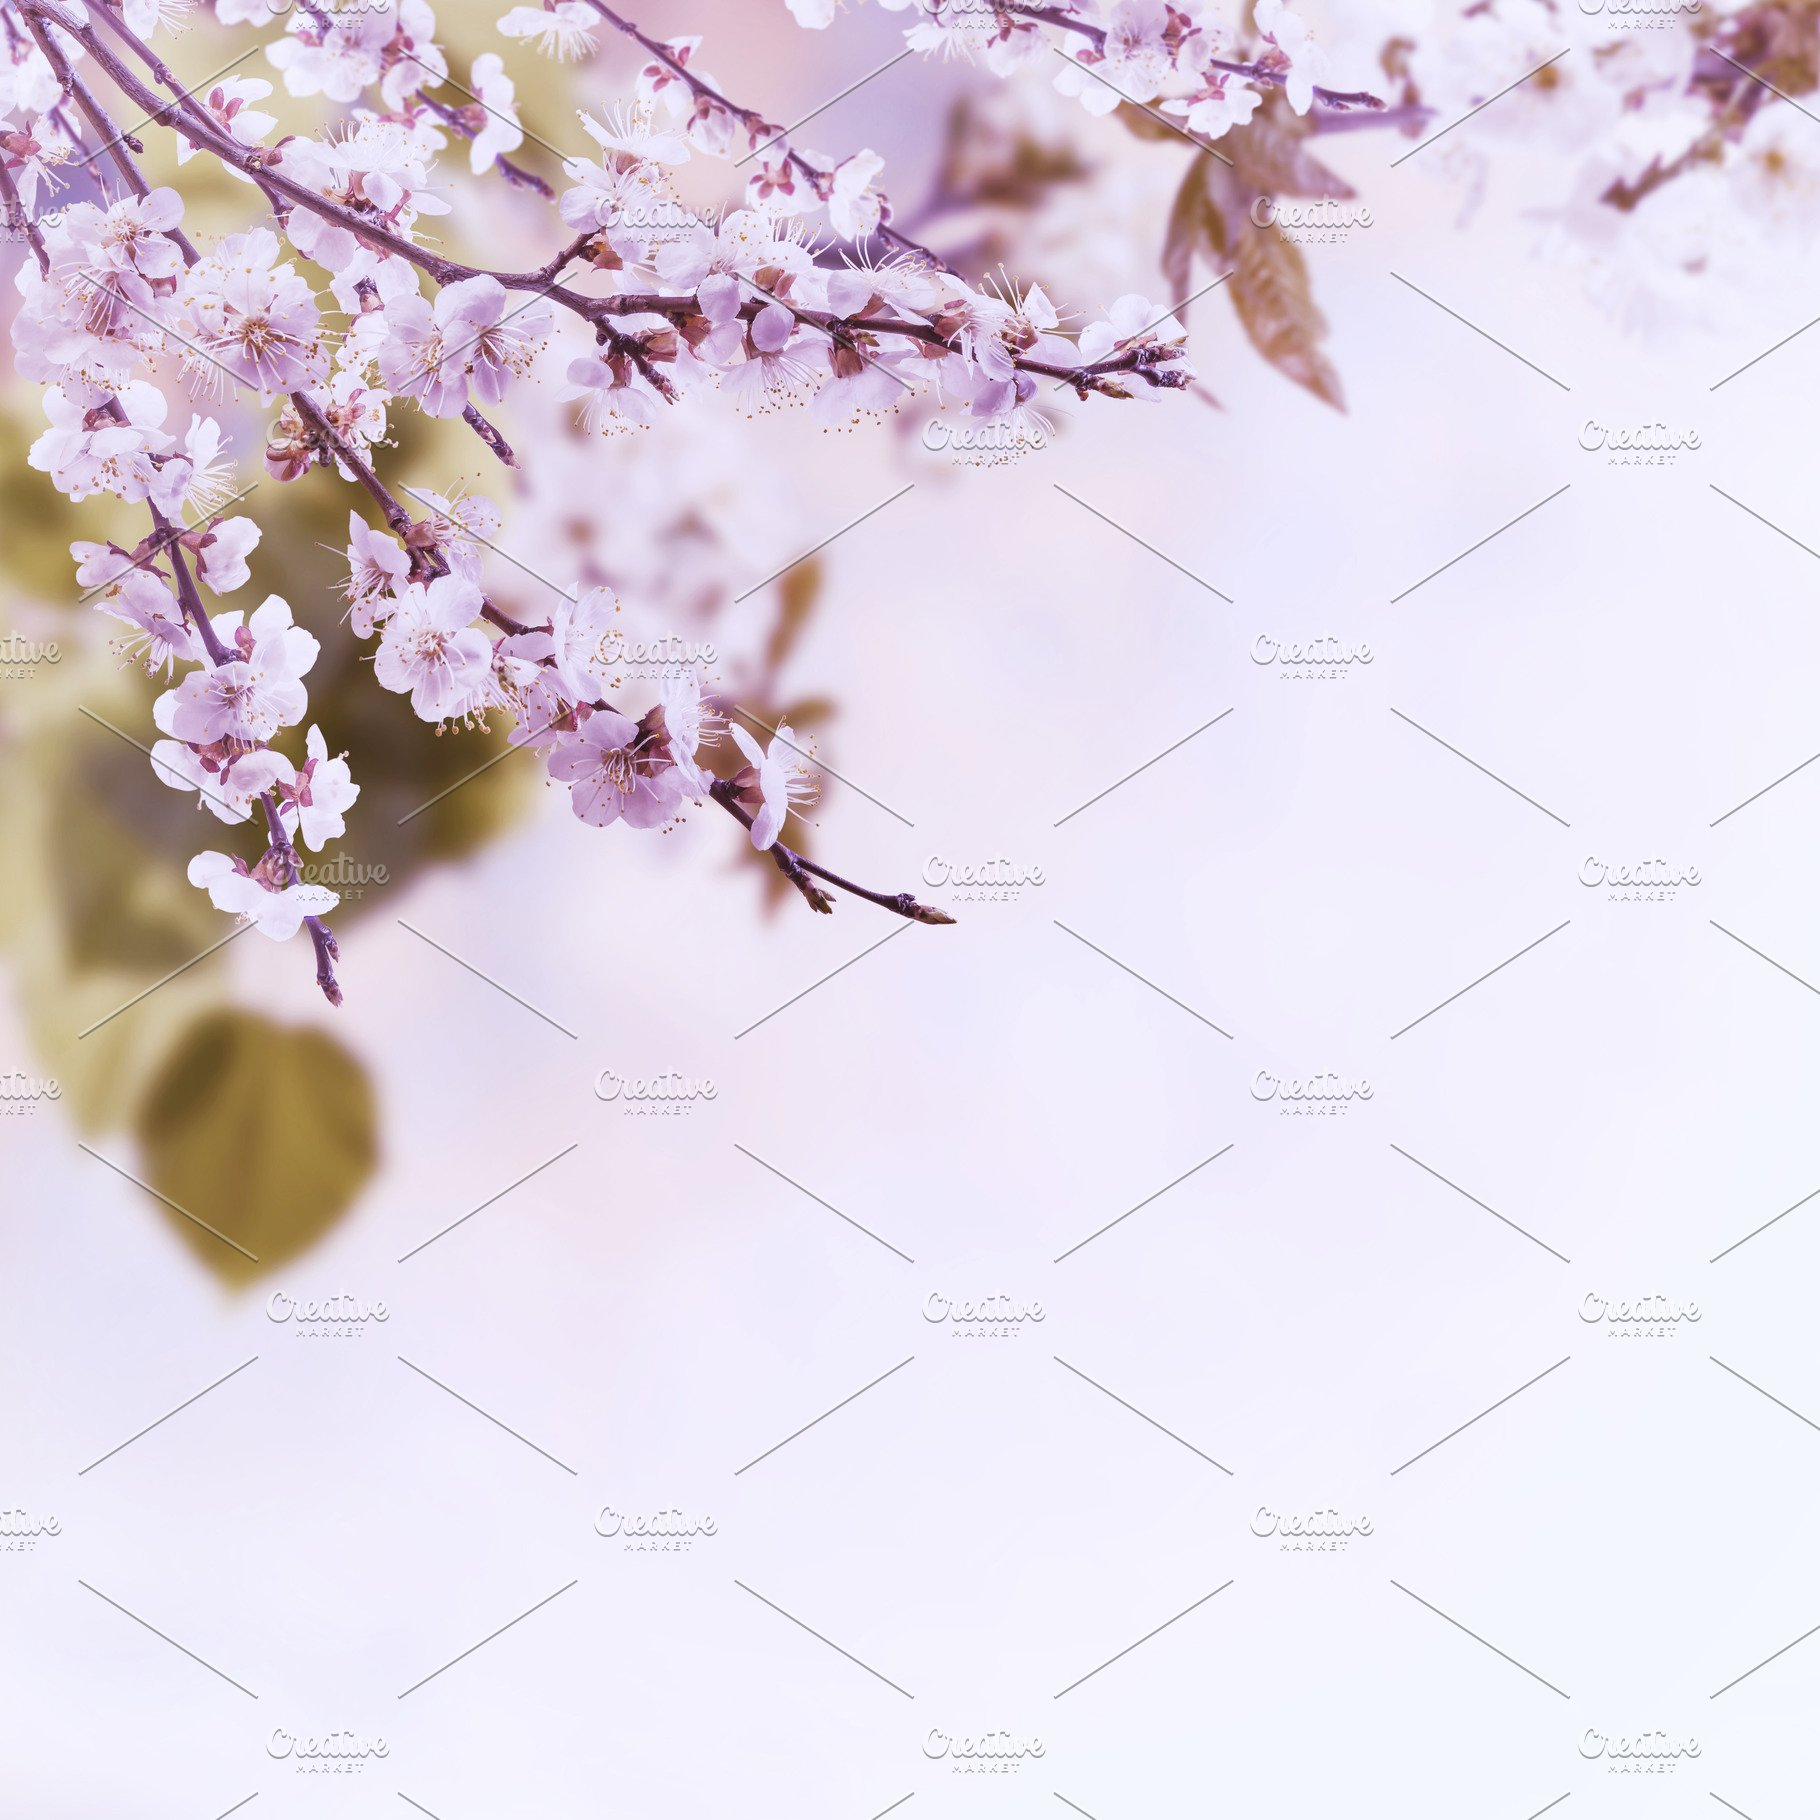 Vintage Floral Background High Quality Nature Stock Photos